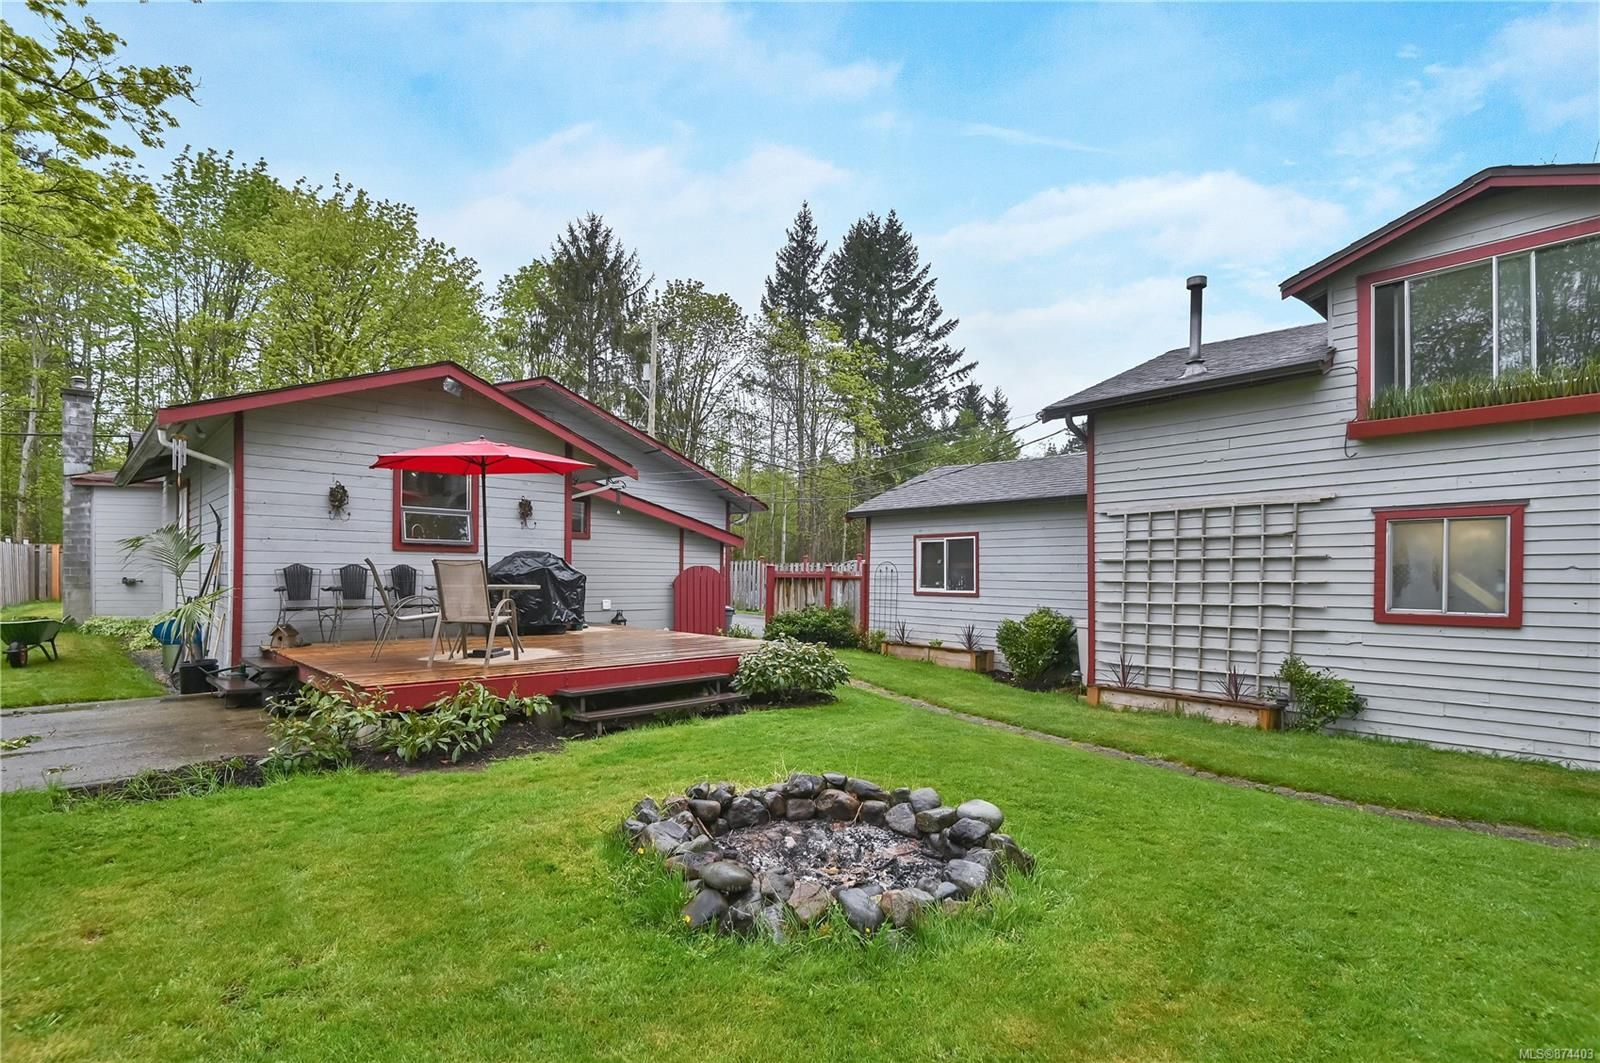 Main Photo: 2440 Quinsam Rd in : CR Campbell River West House for sale (Campbell River)  : MLS®# 874403